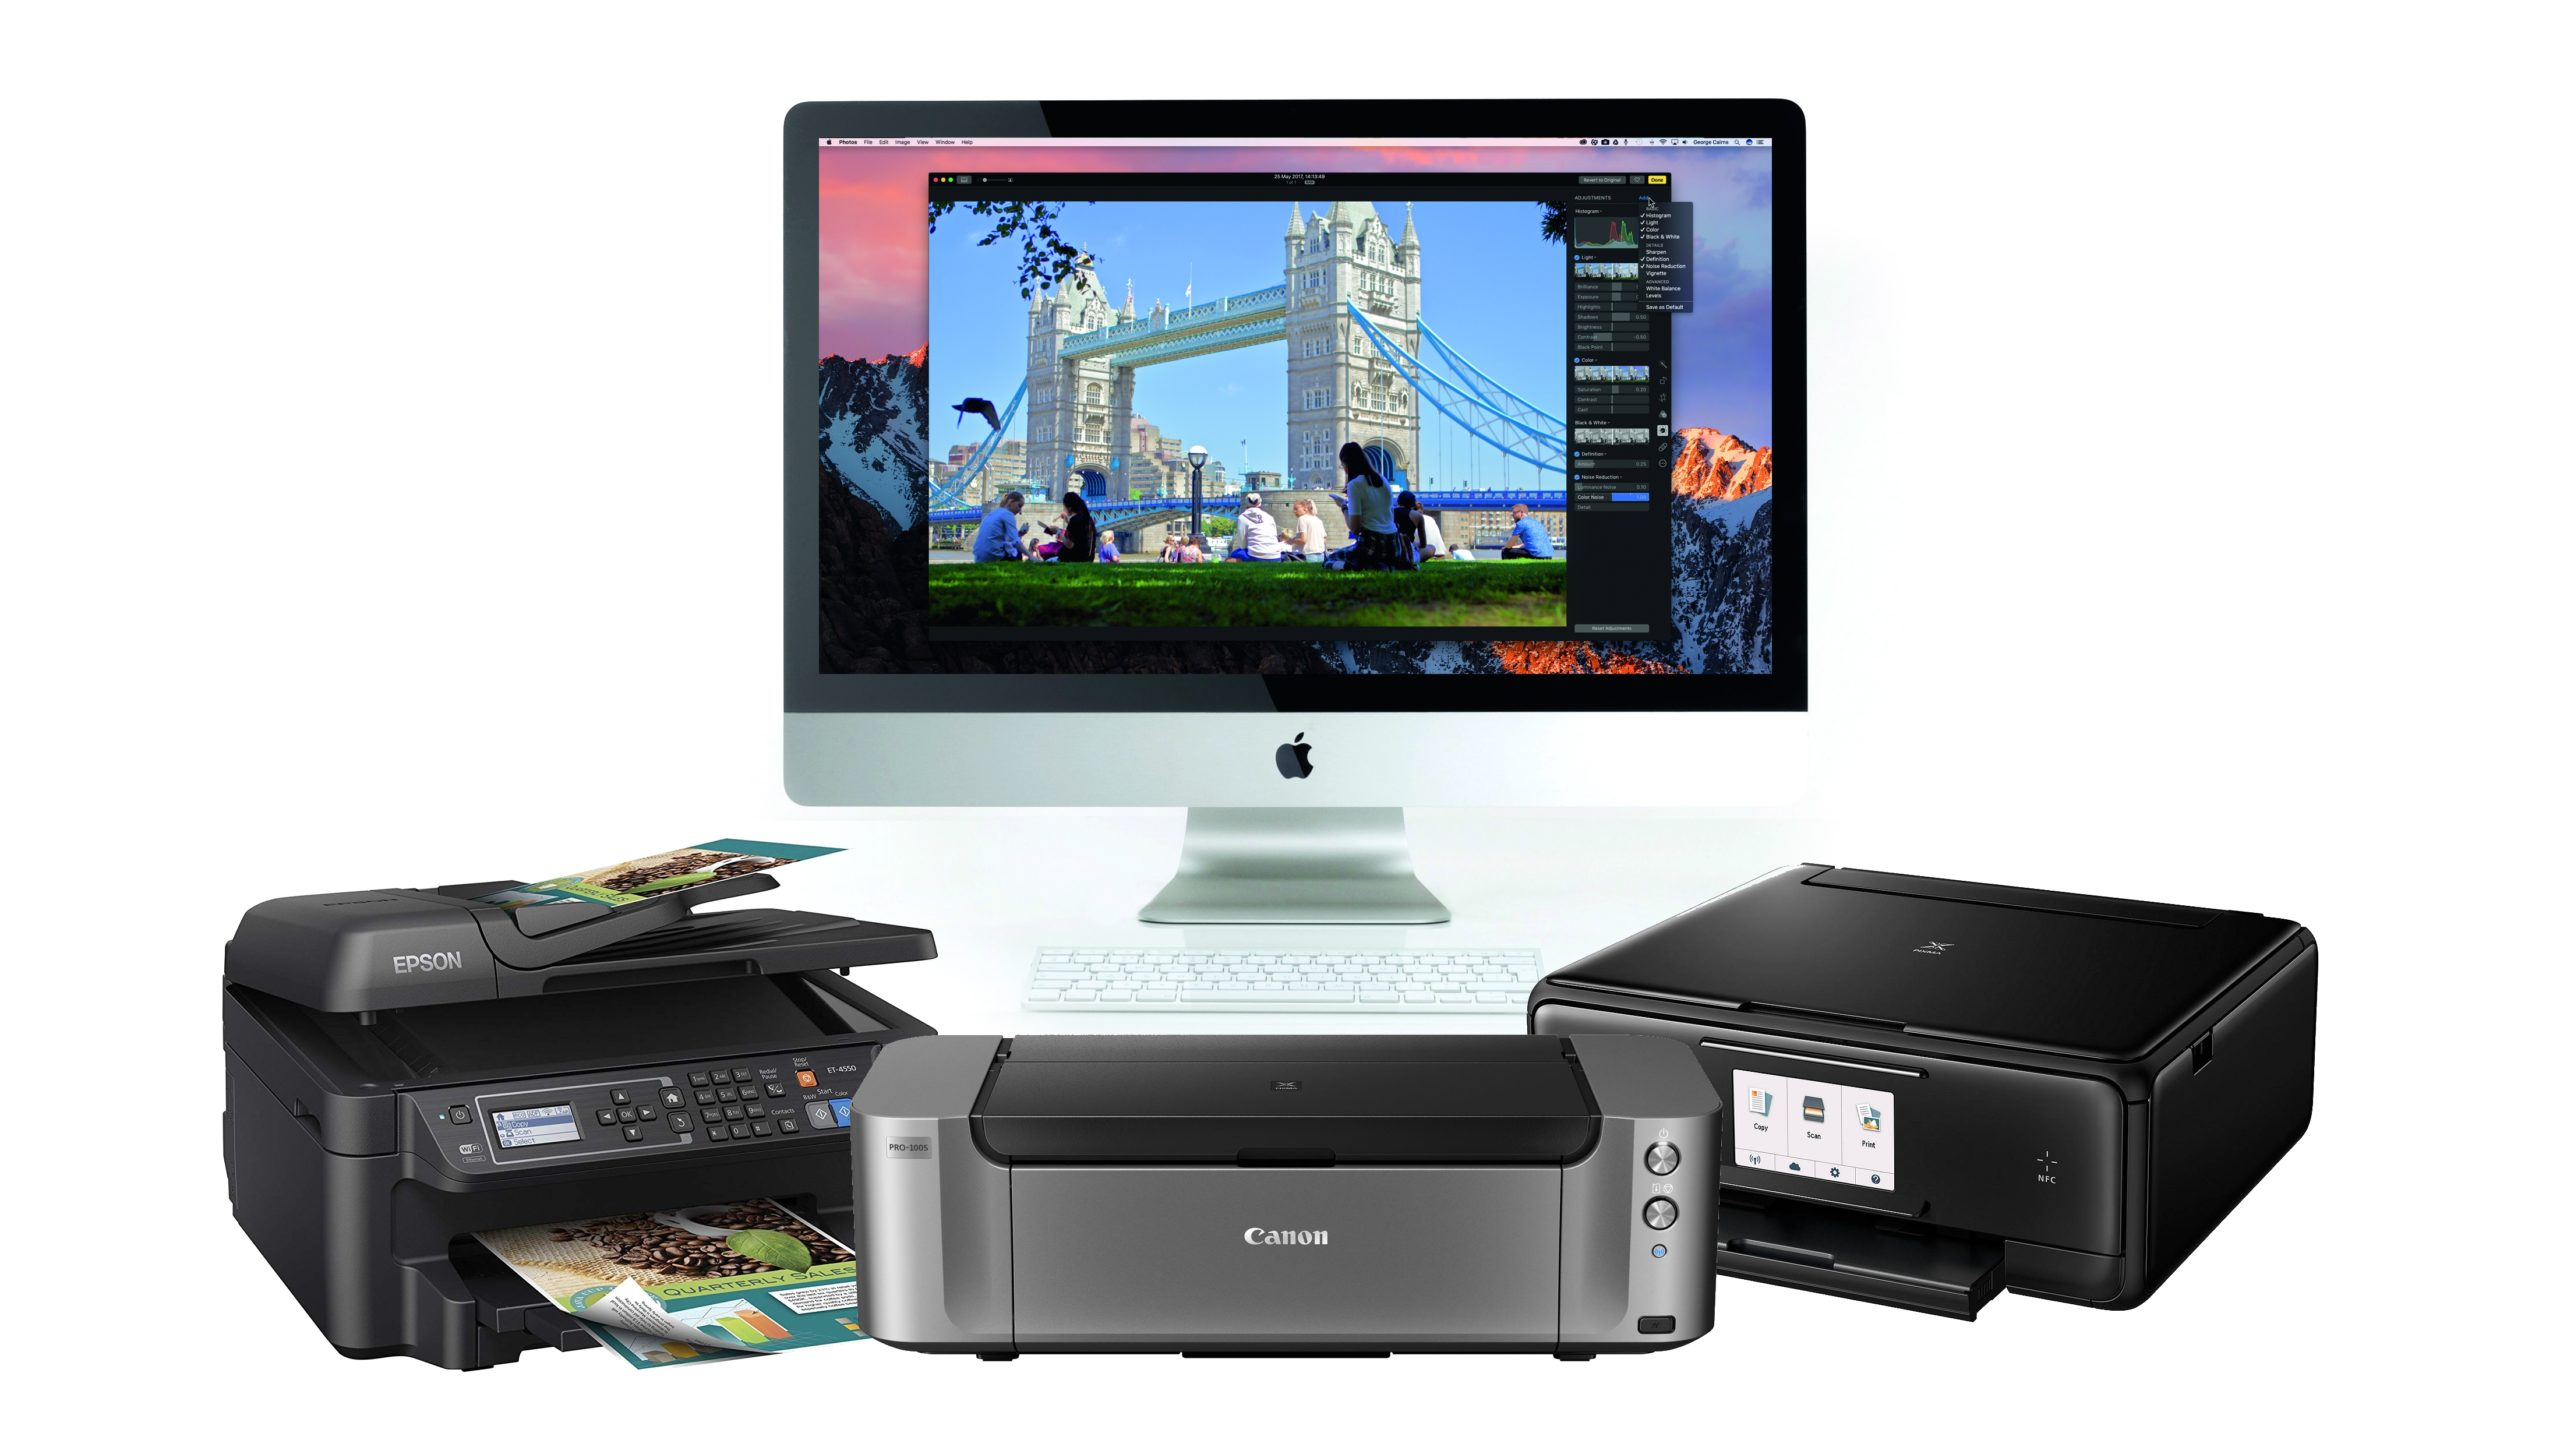 How To Connect Wireless Printer To Mac?